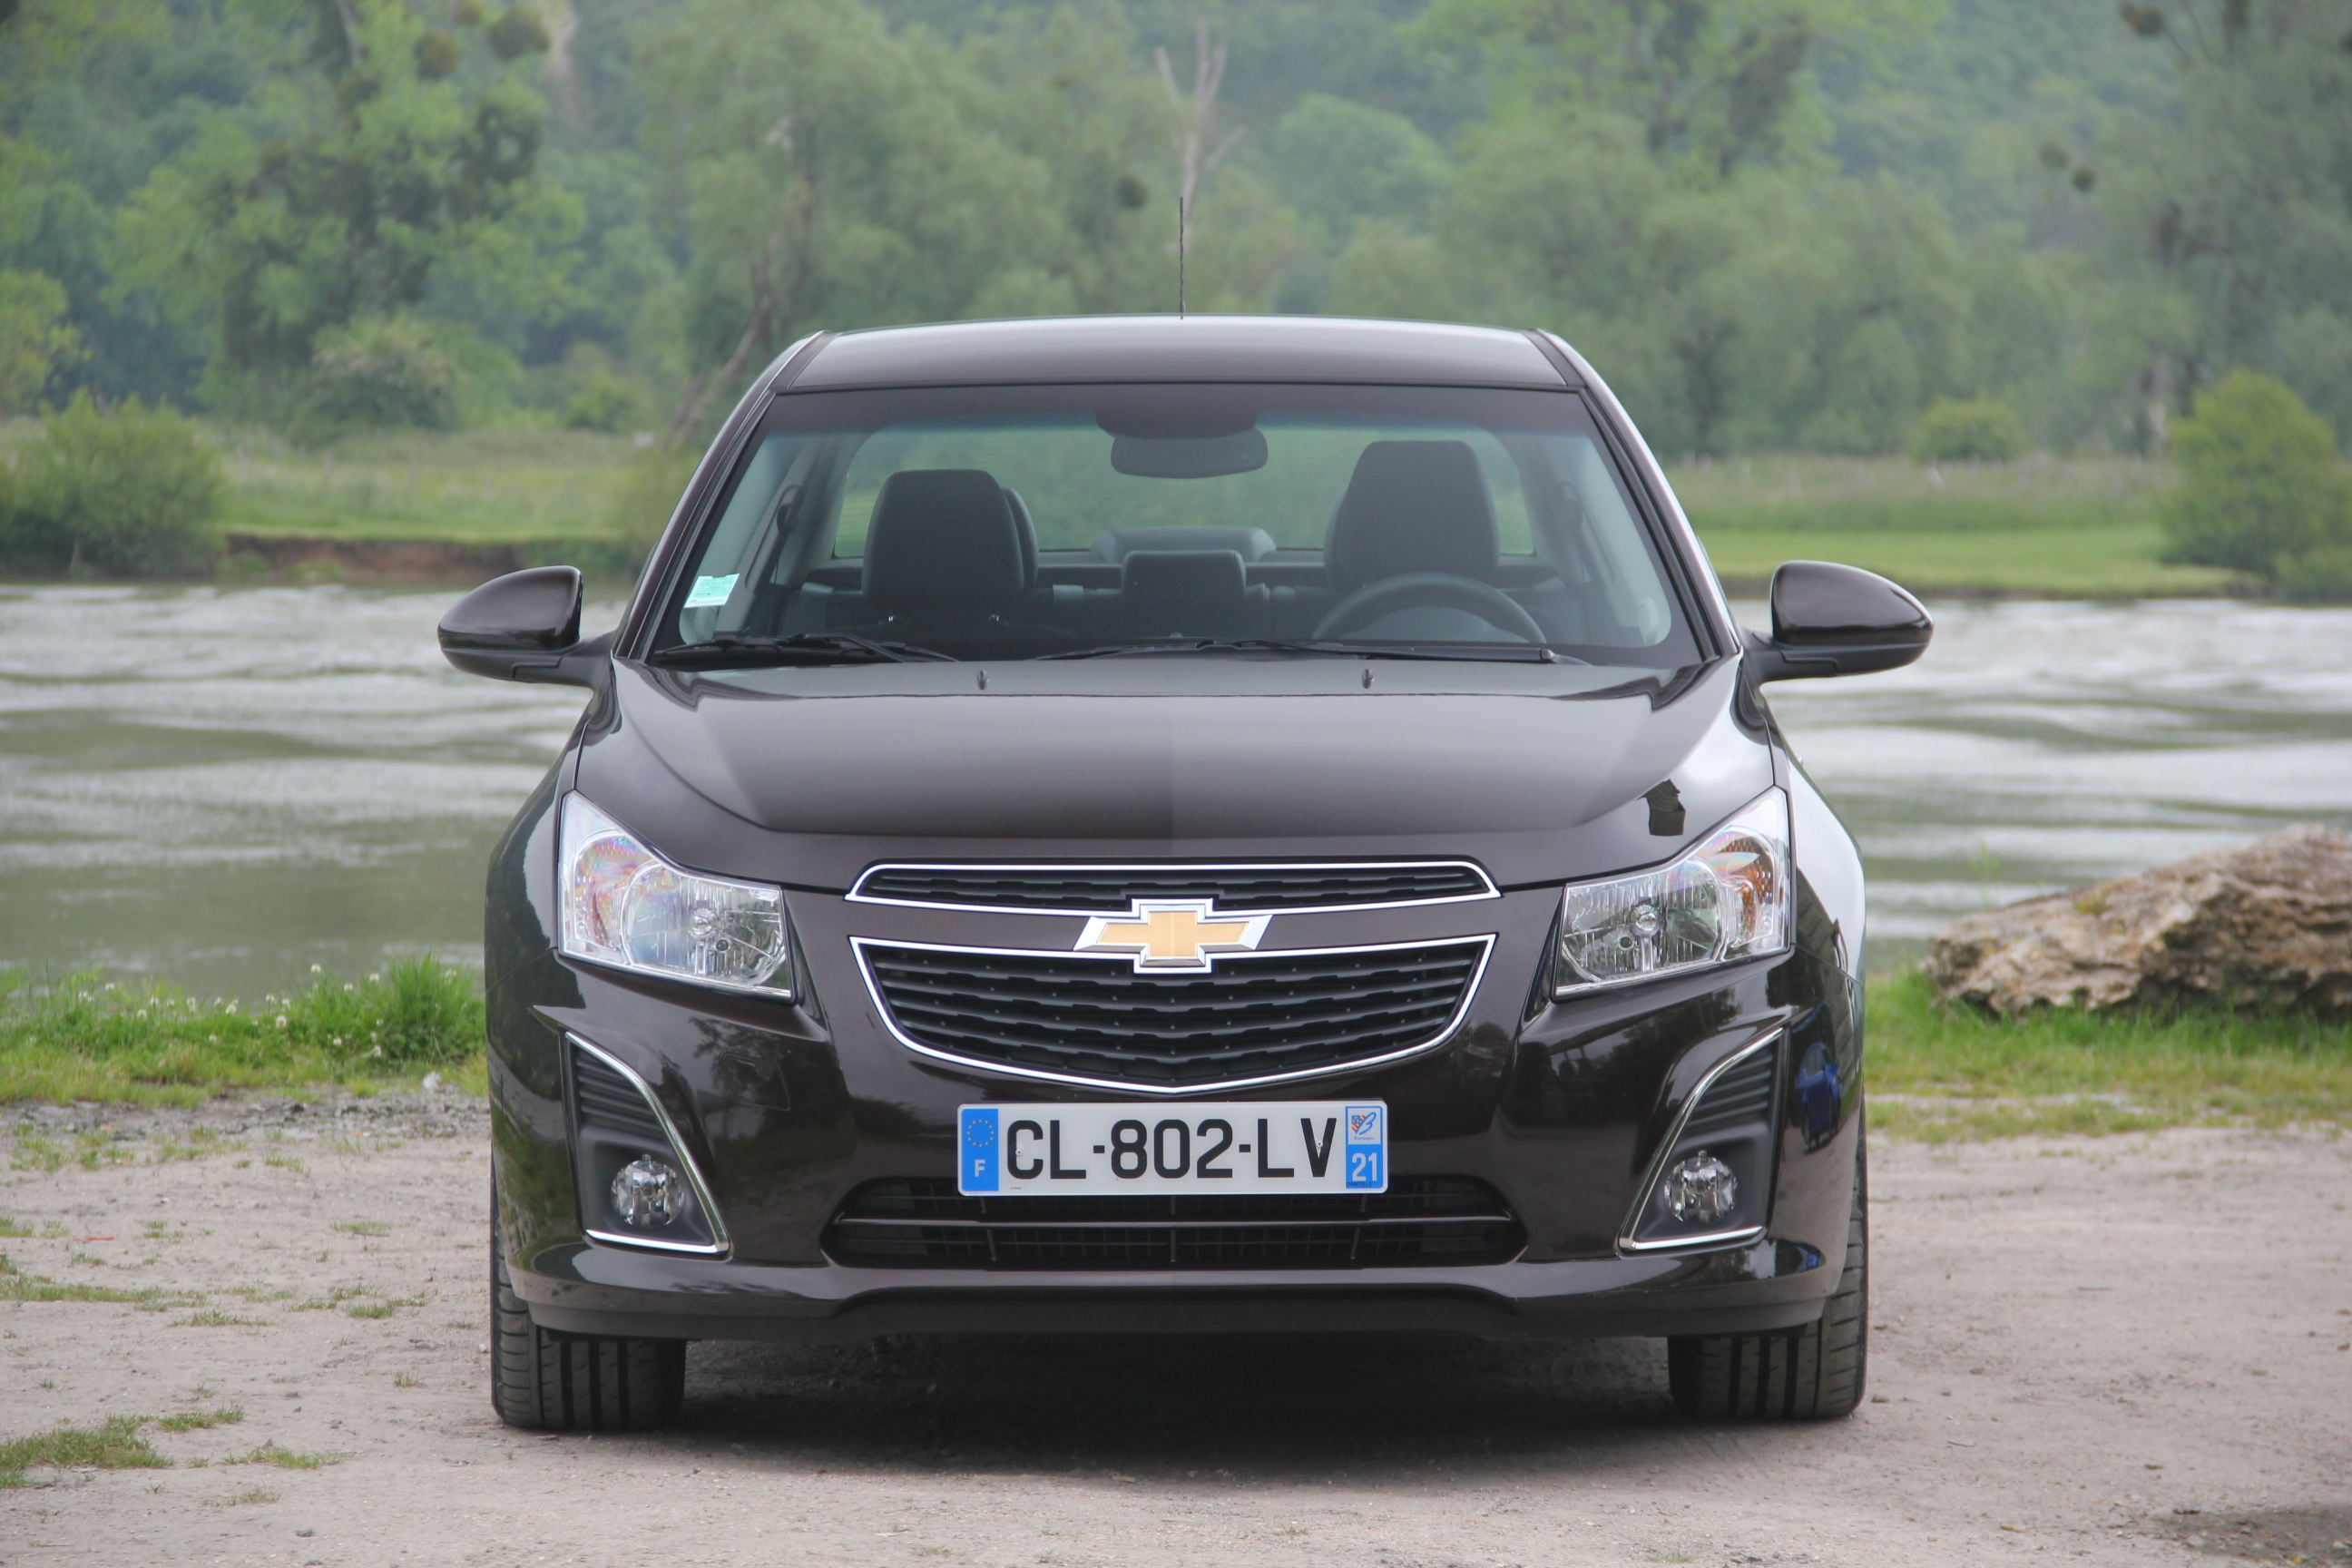 comparatif vid o skoda octavia vs chevrolet cruze deux. Black Bedroom Furniture Sets. Home Design Ideas